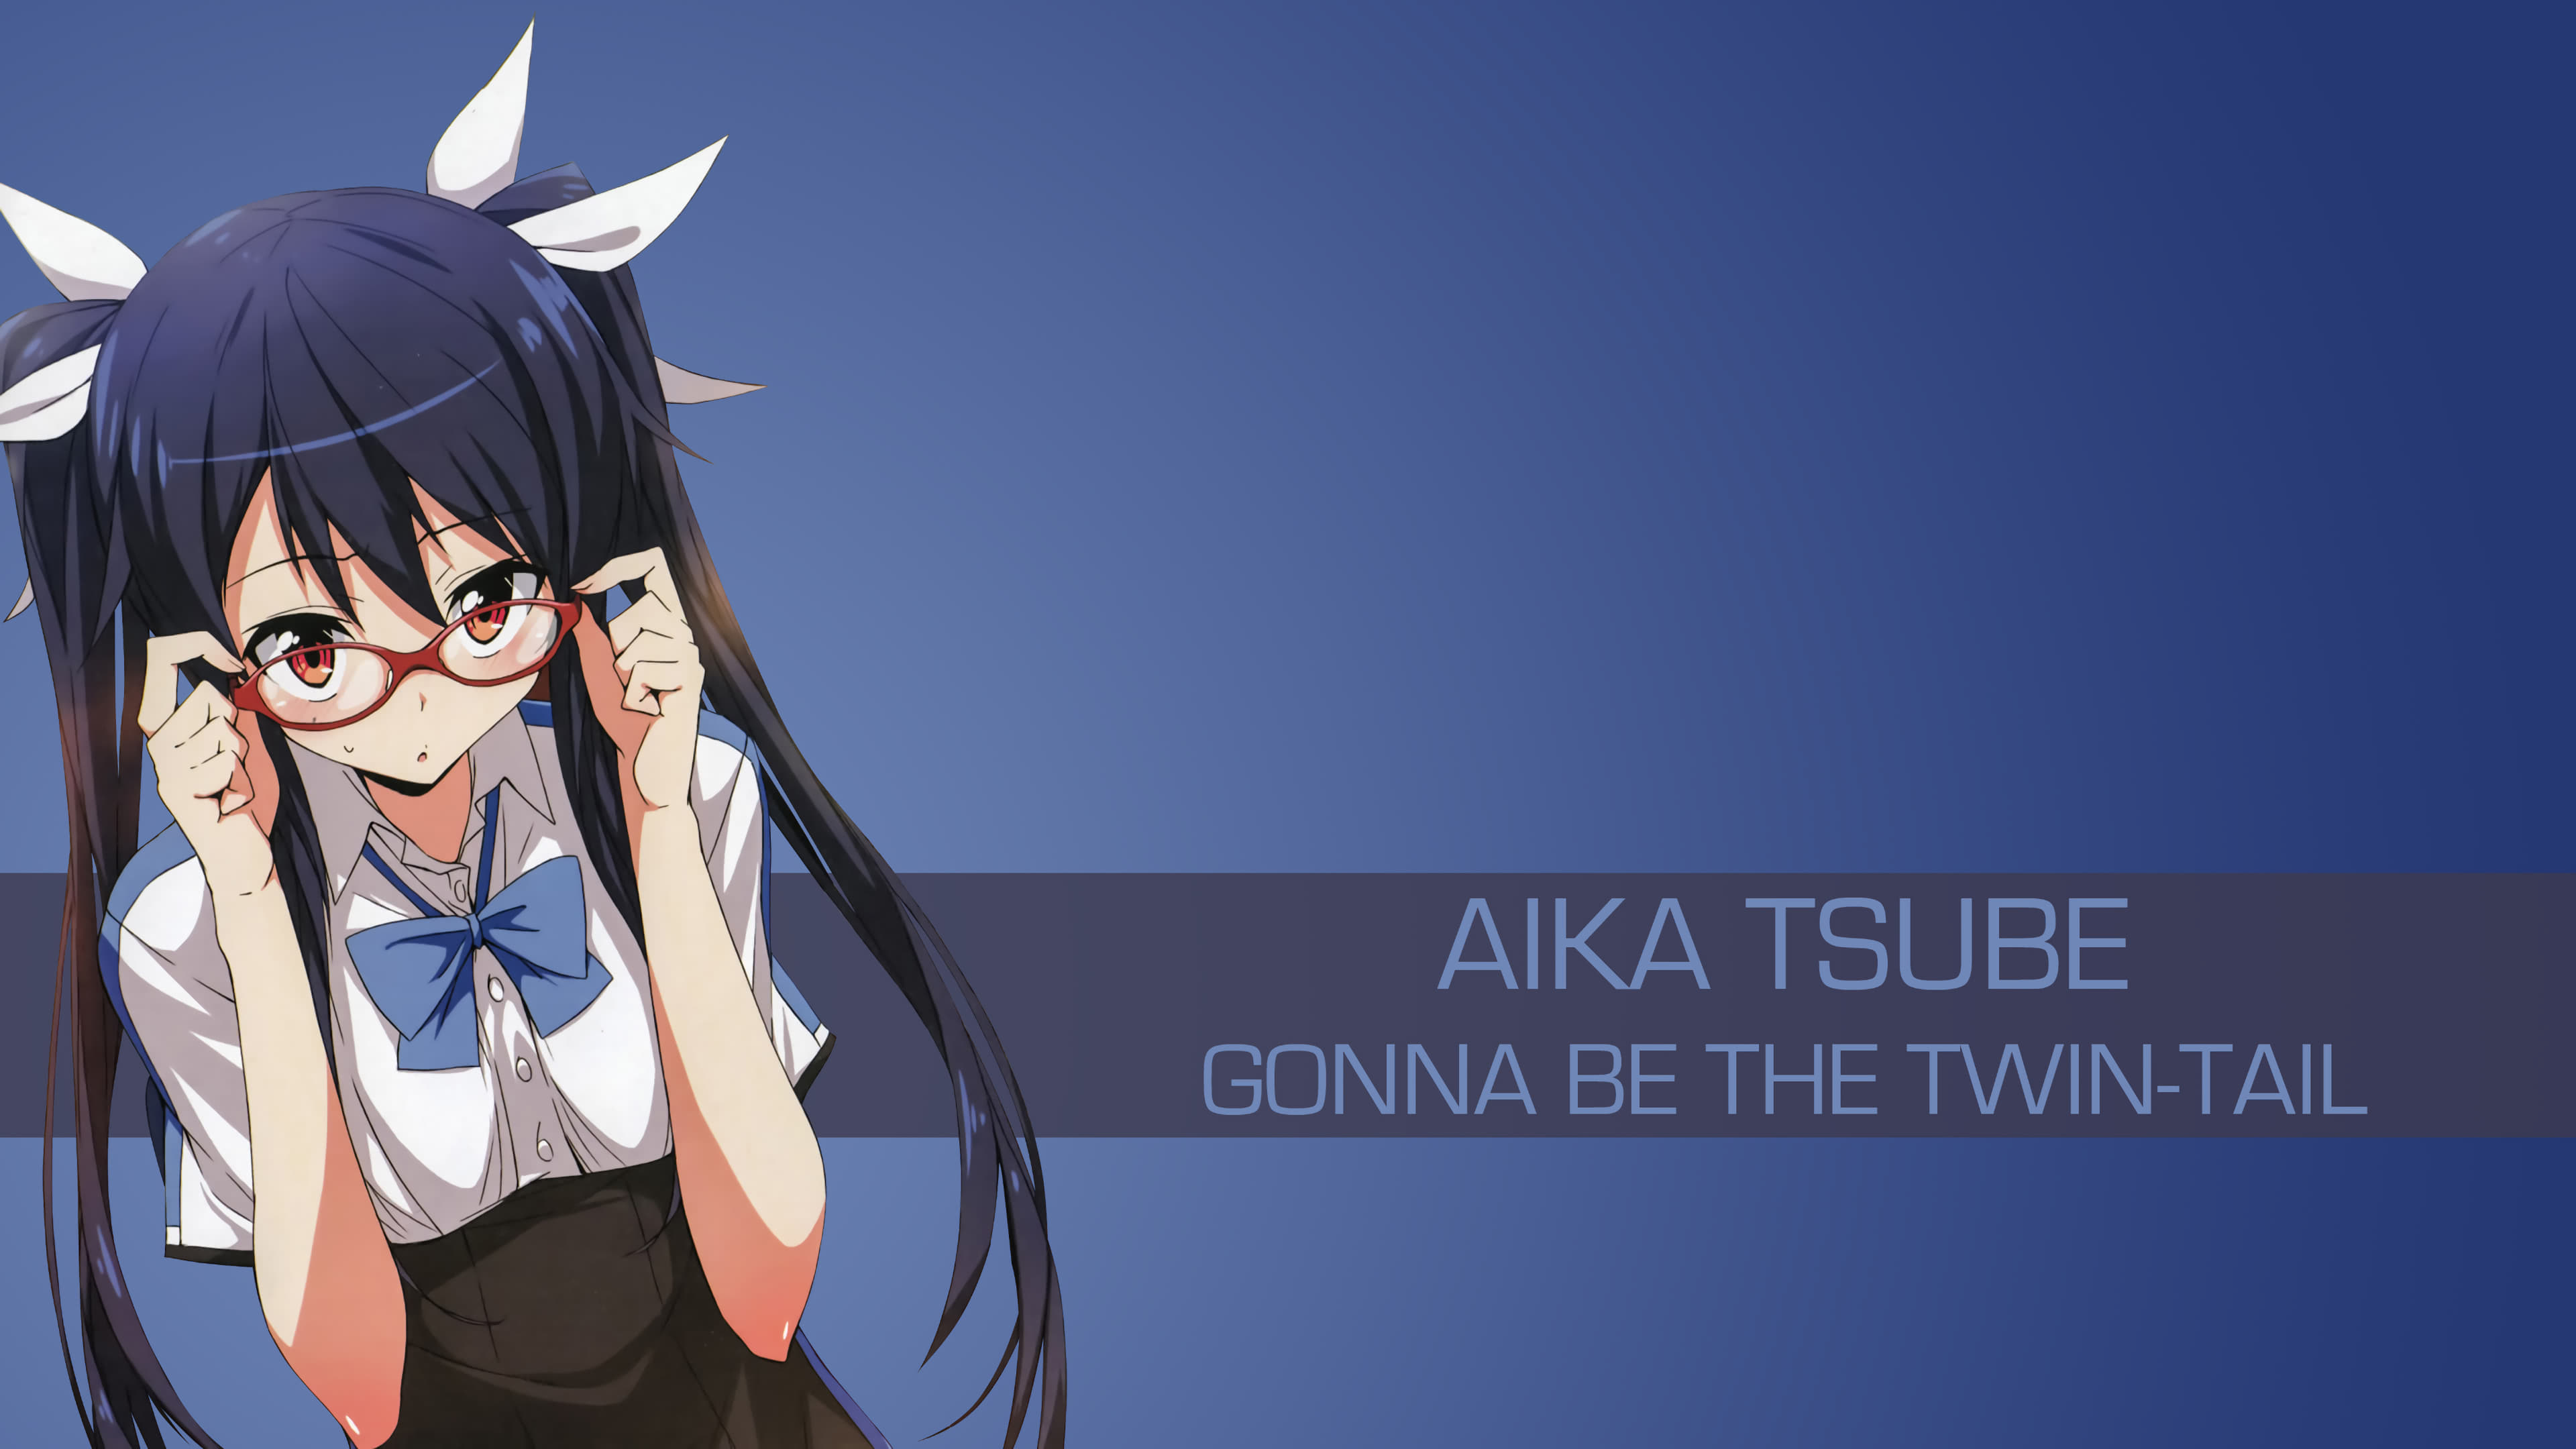 aika tsube gonna be the twin tail uhd 4k wallpaper